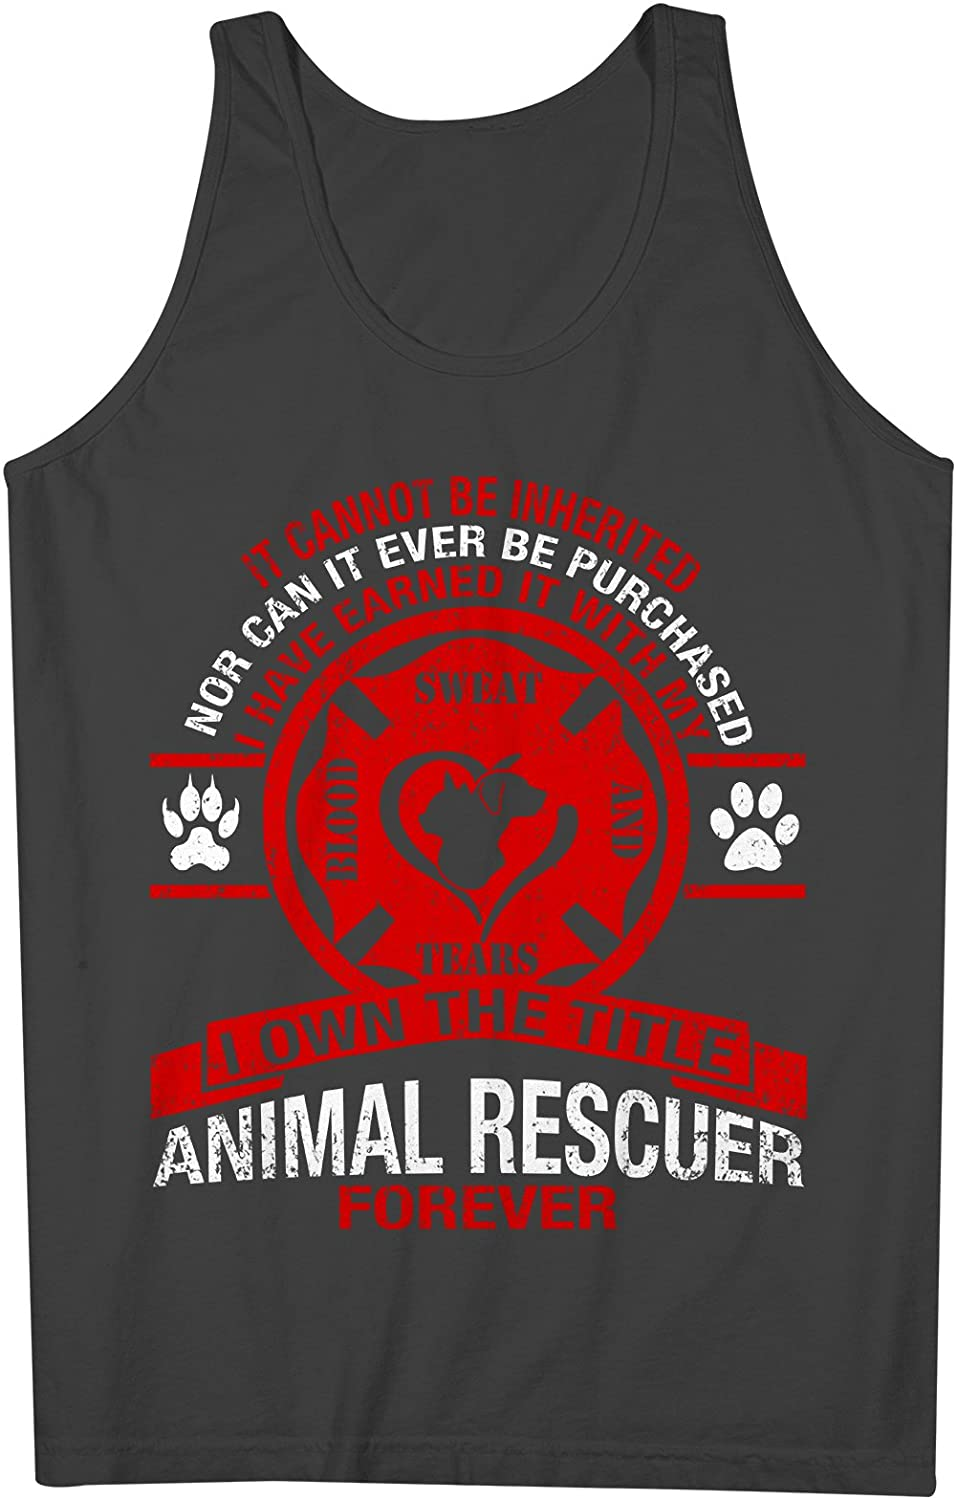 Animal Rescuer Forever 男性用 Tank Top Sleeveless Shirt